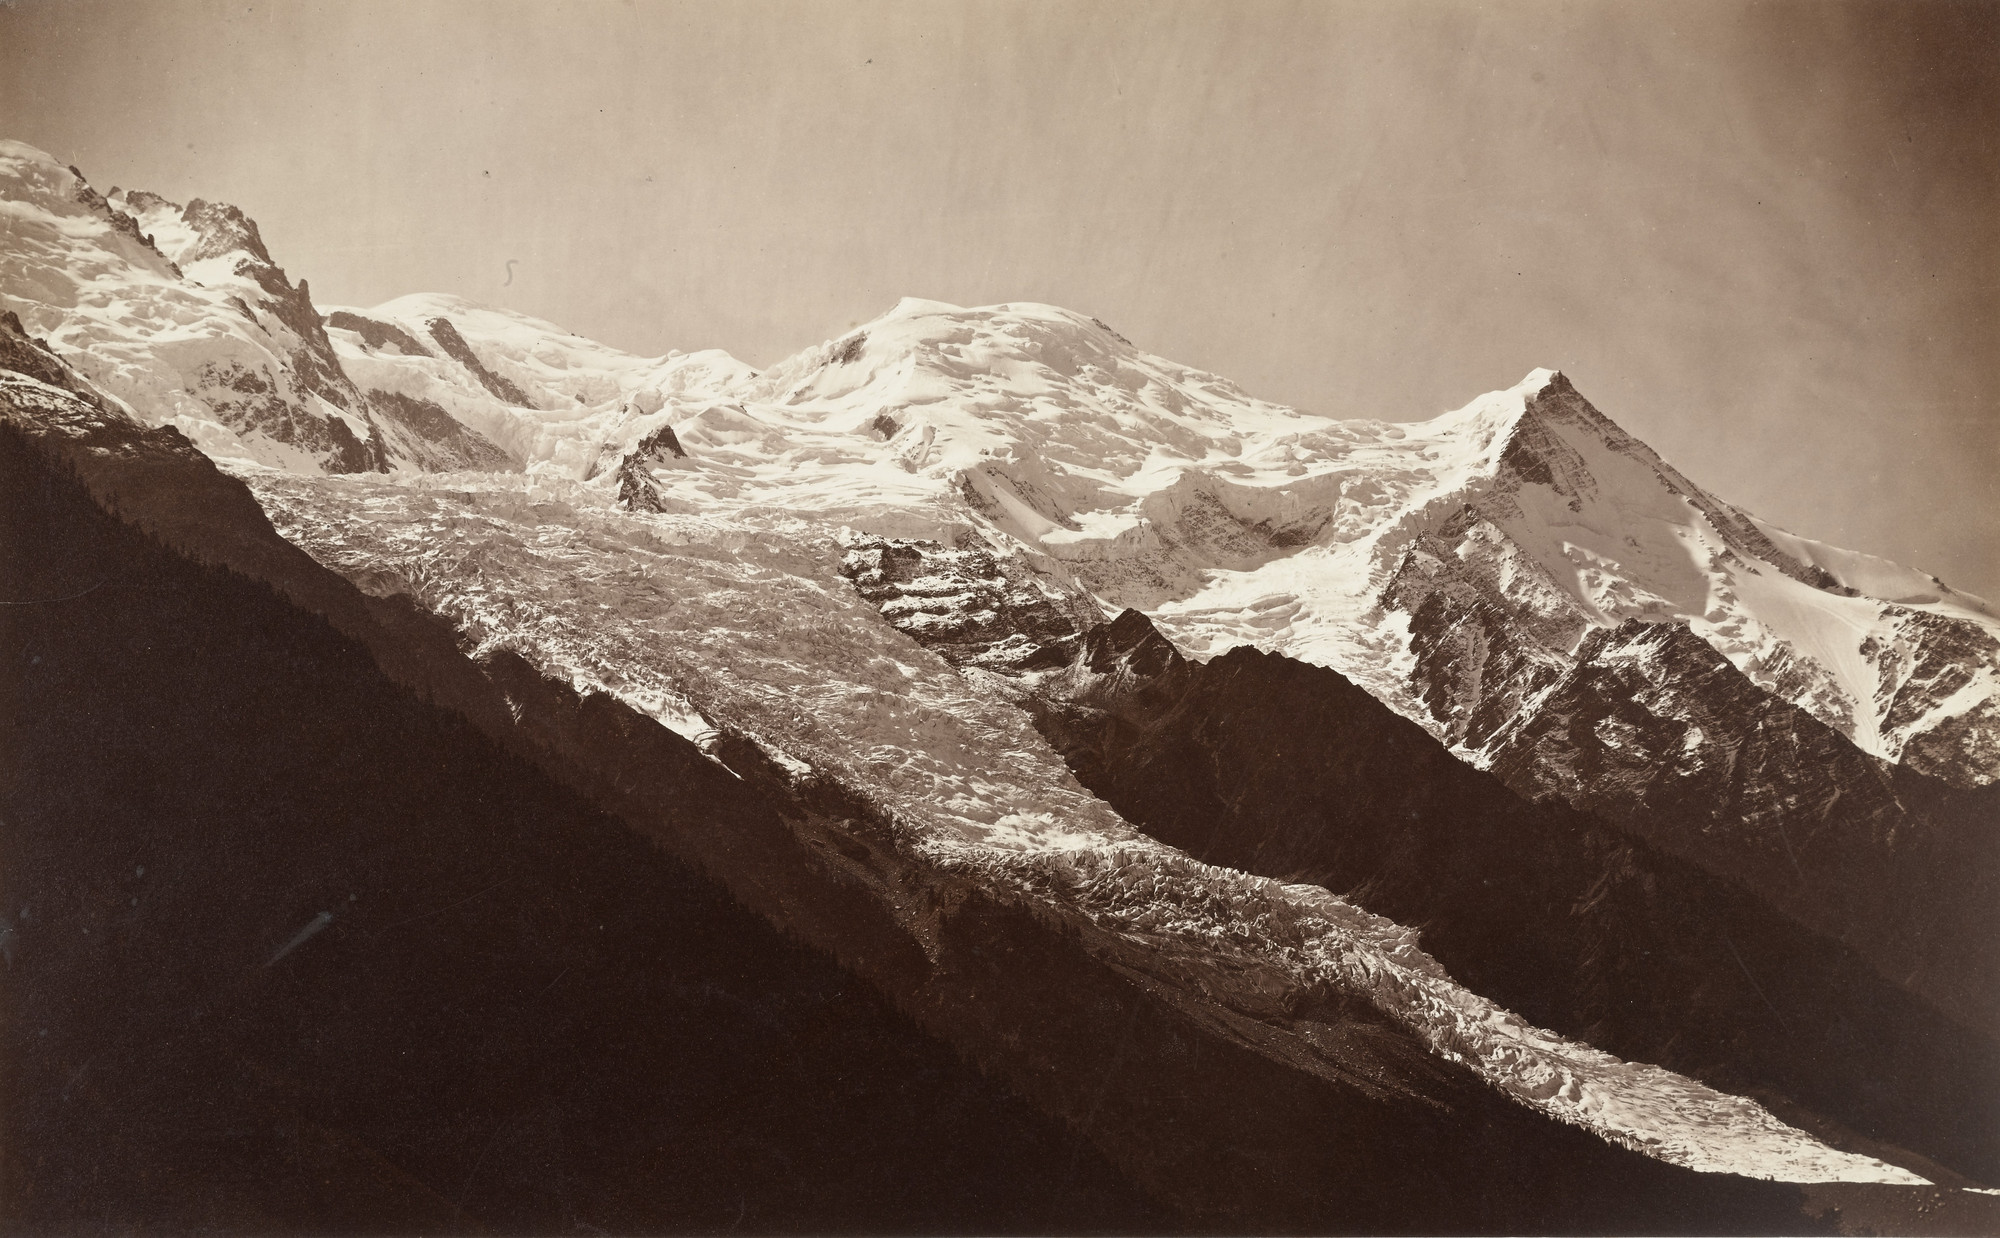 Louis-Auguste Bisson, Auguste-Rosalie Bisson. The Ascent of Mont Blanc. 1860